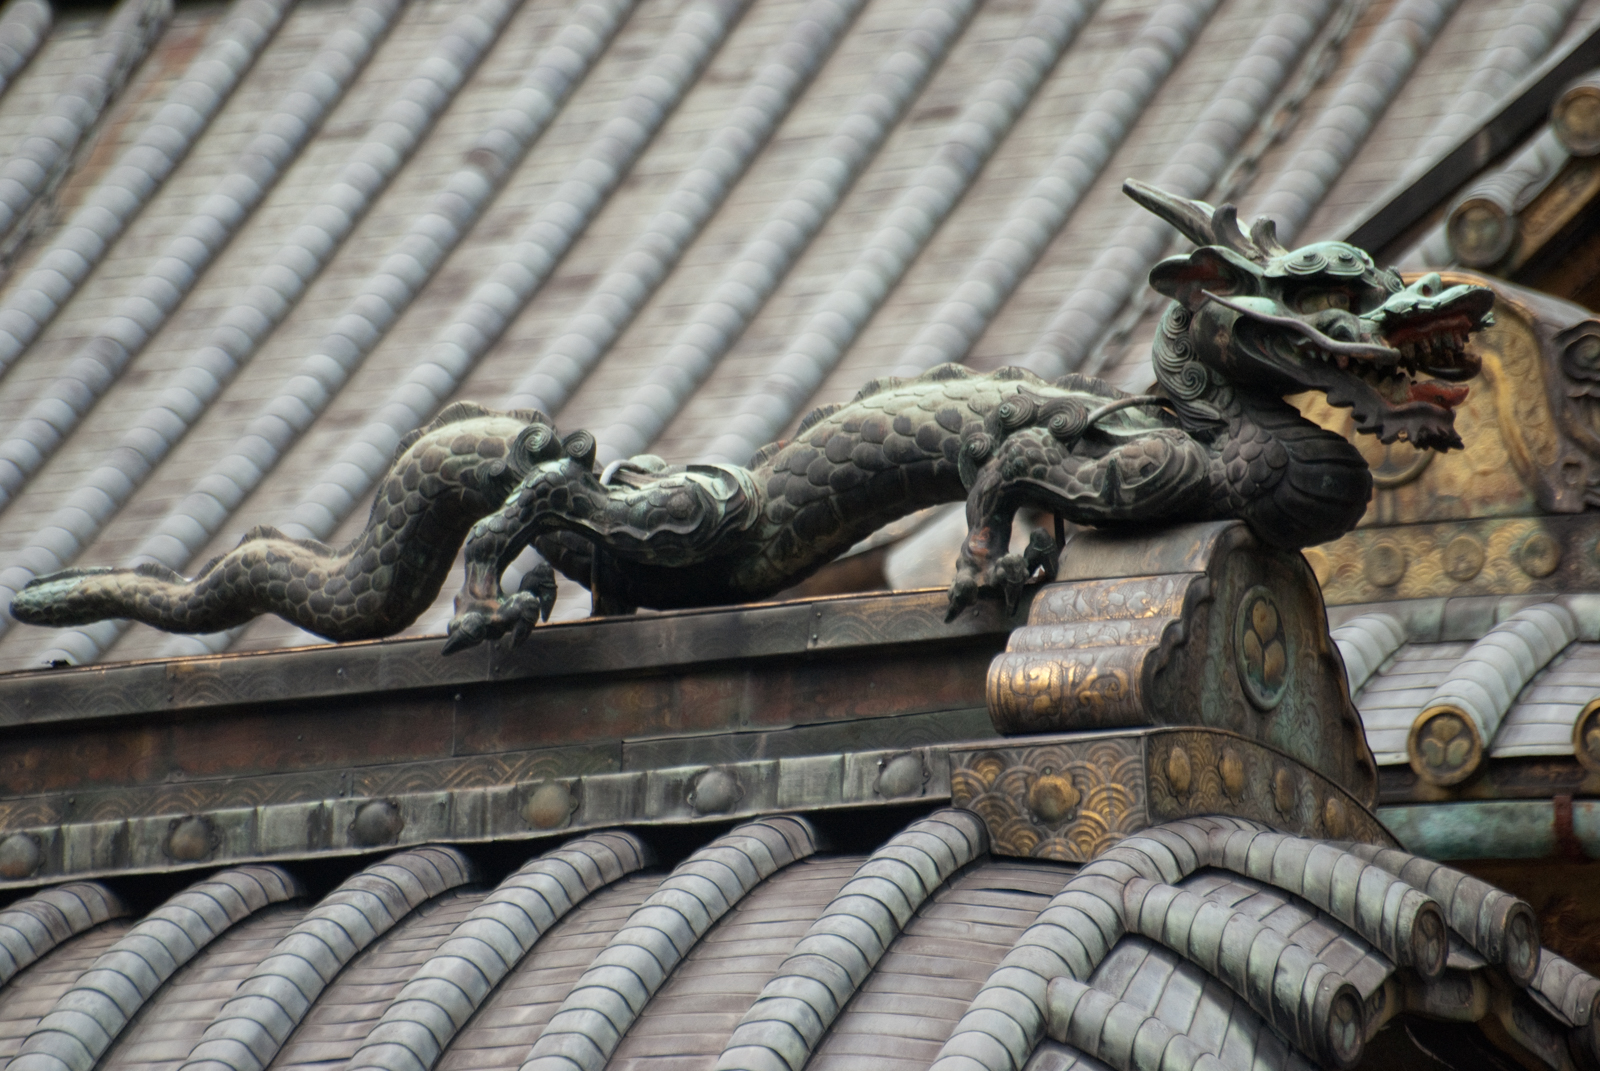 Roof guardian at the Toshogu shrine